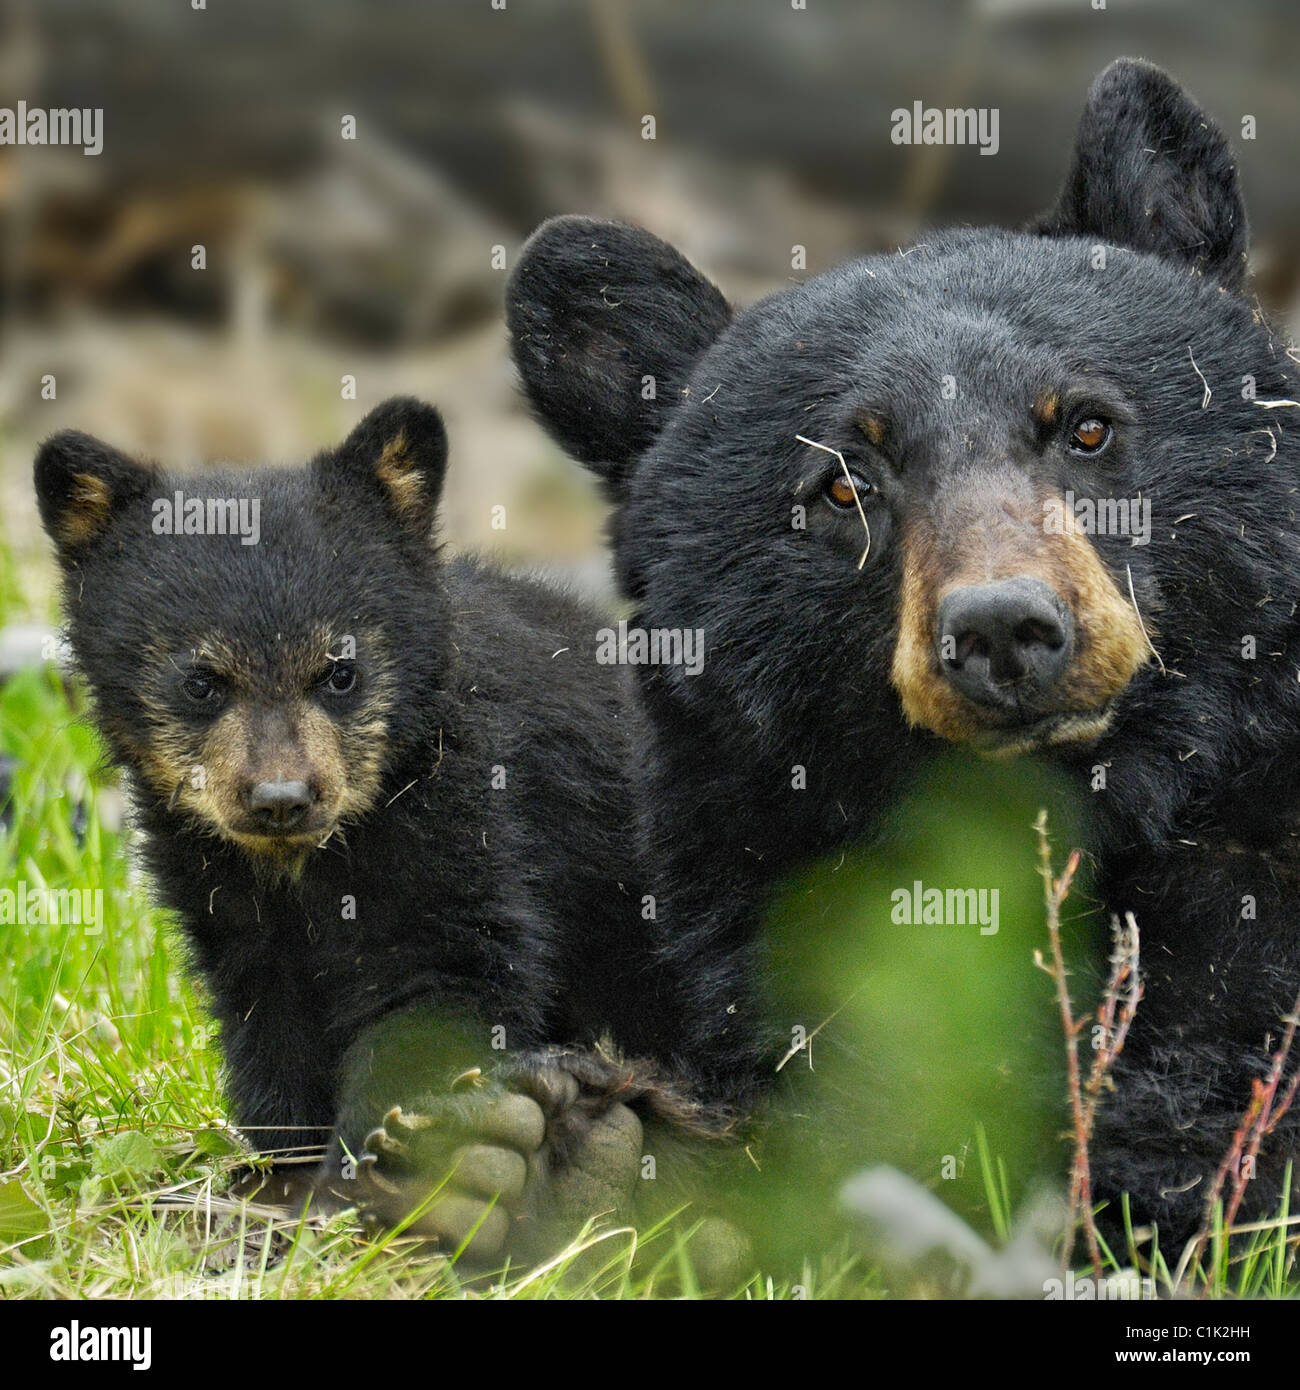 Mother bear and baby bear - Stock Image